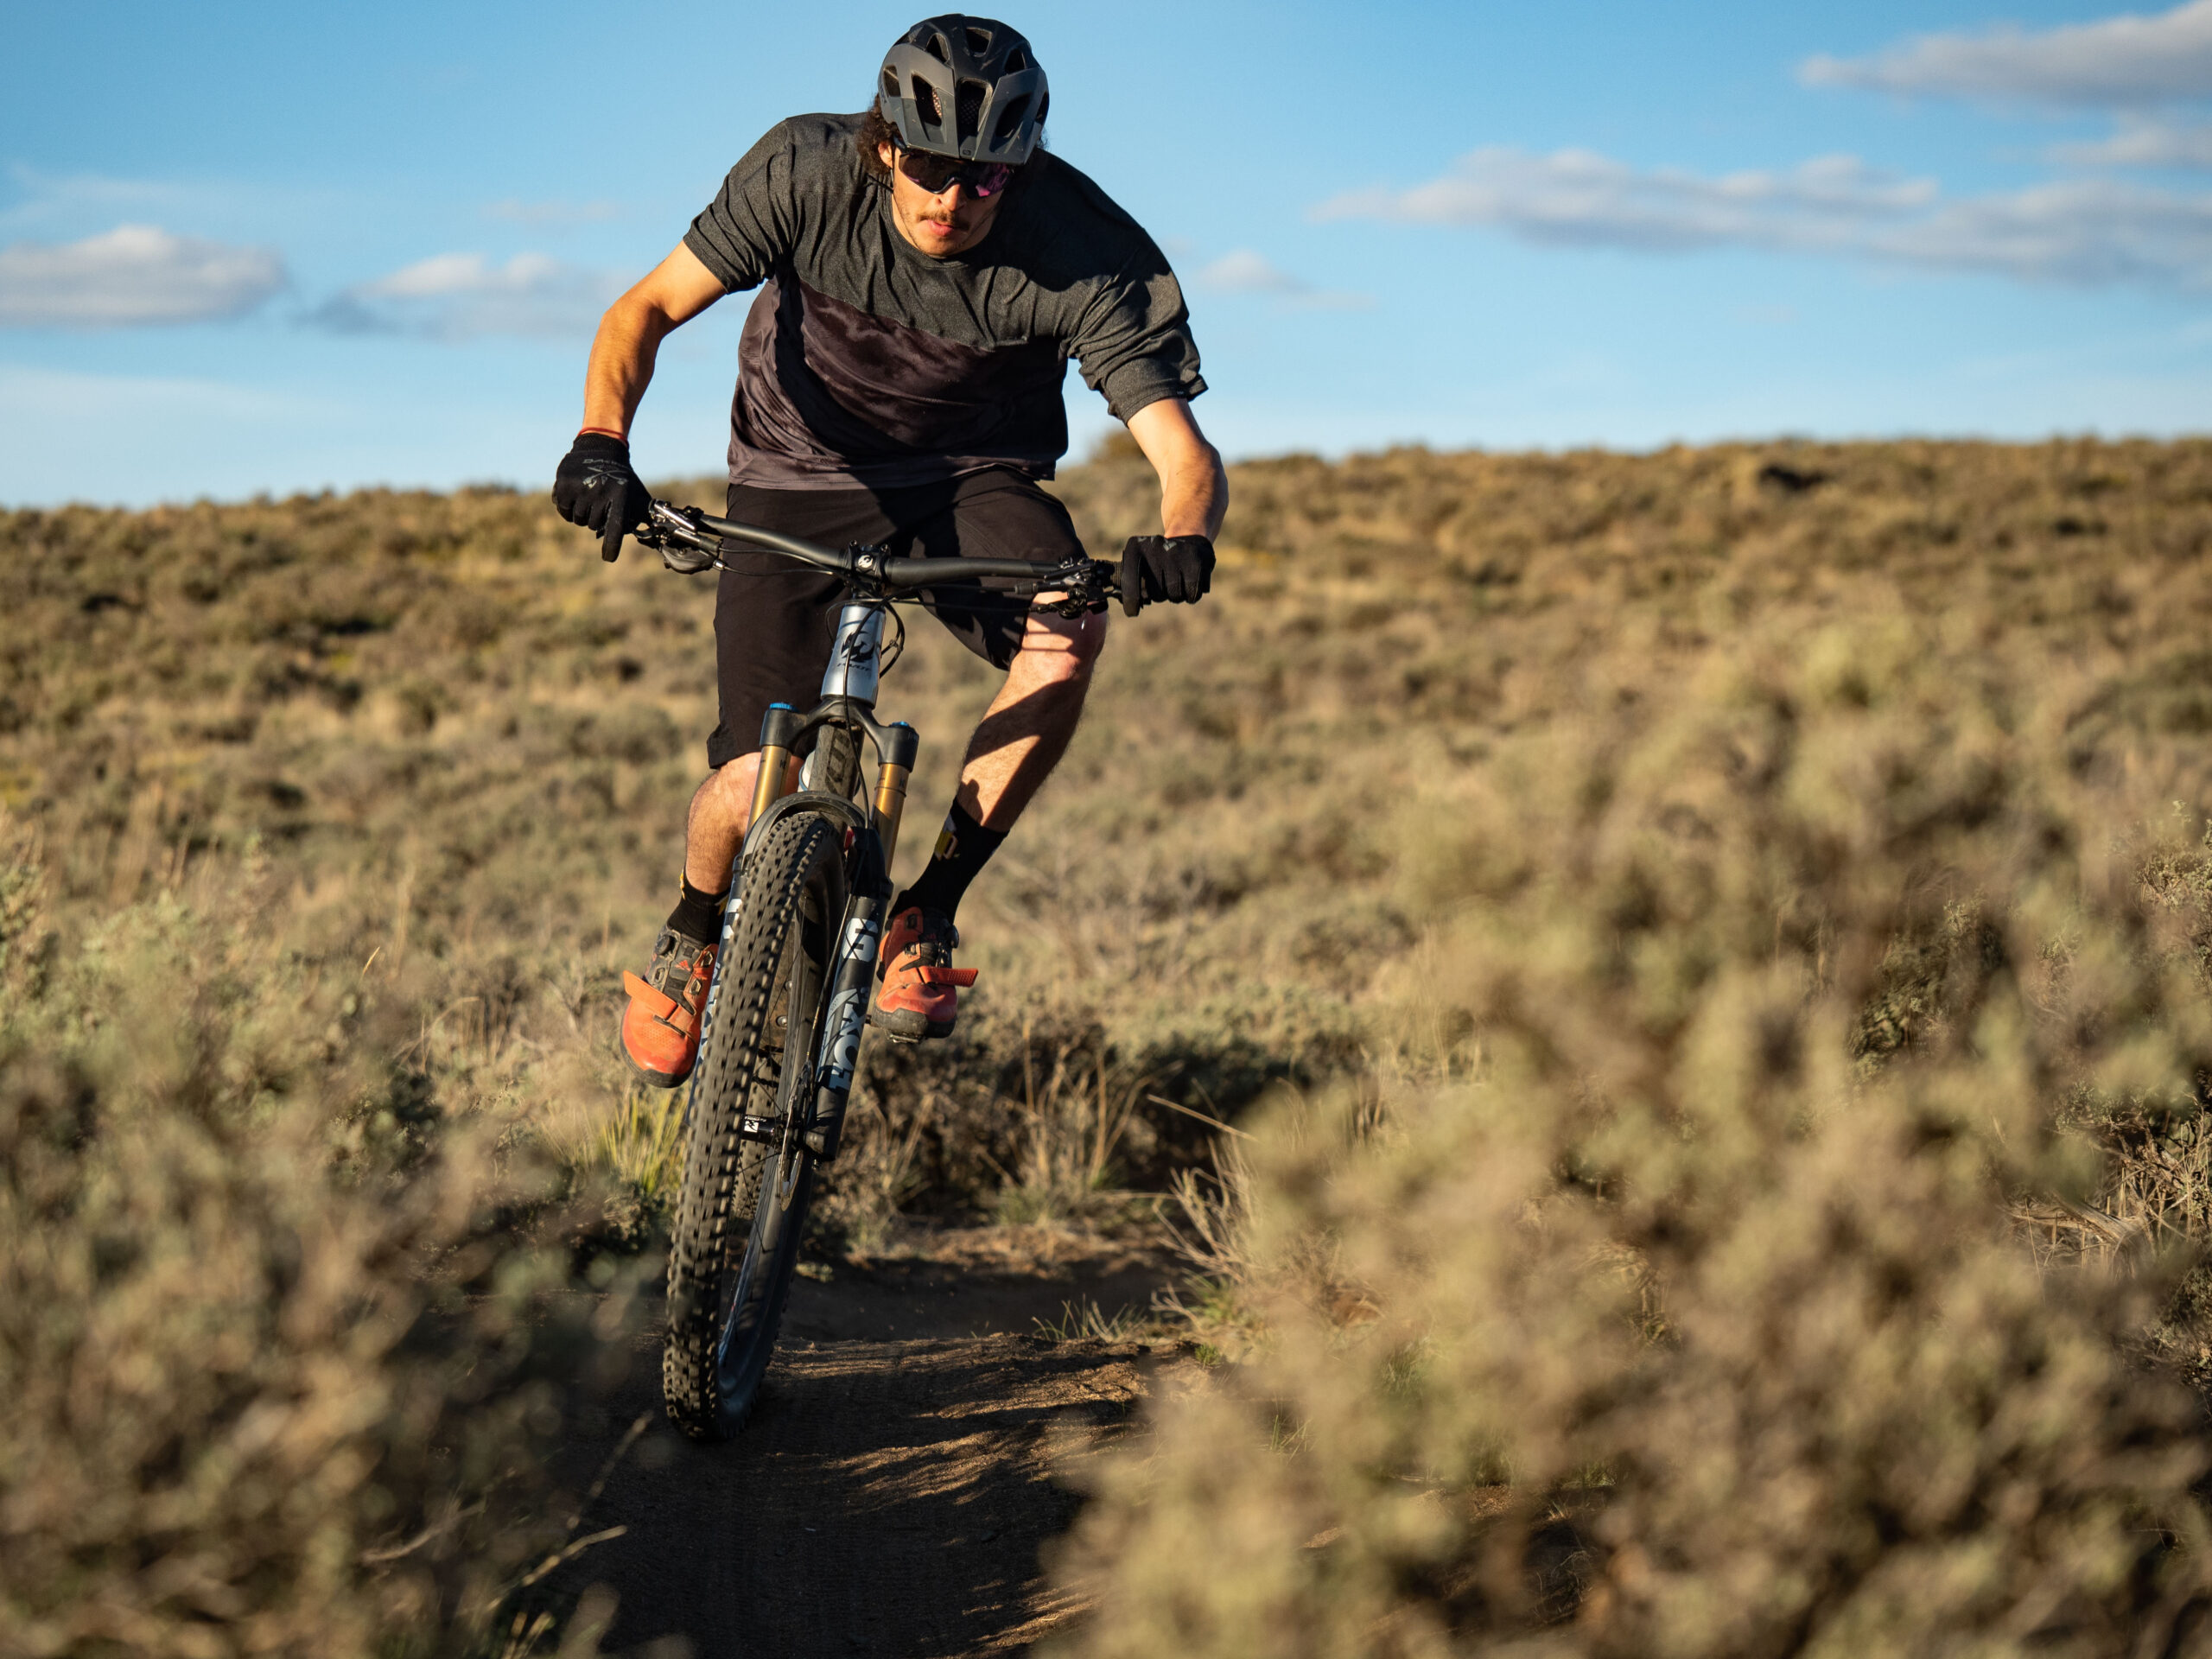 Dylan Wood reviews the Pivot Trail 429 for Blister